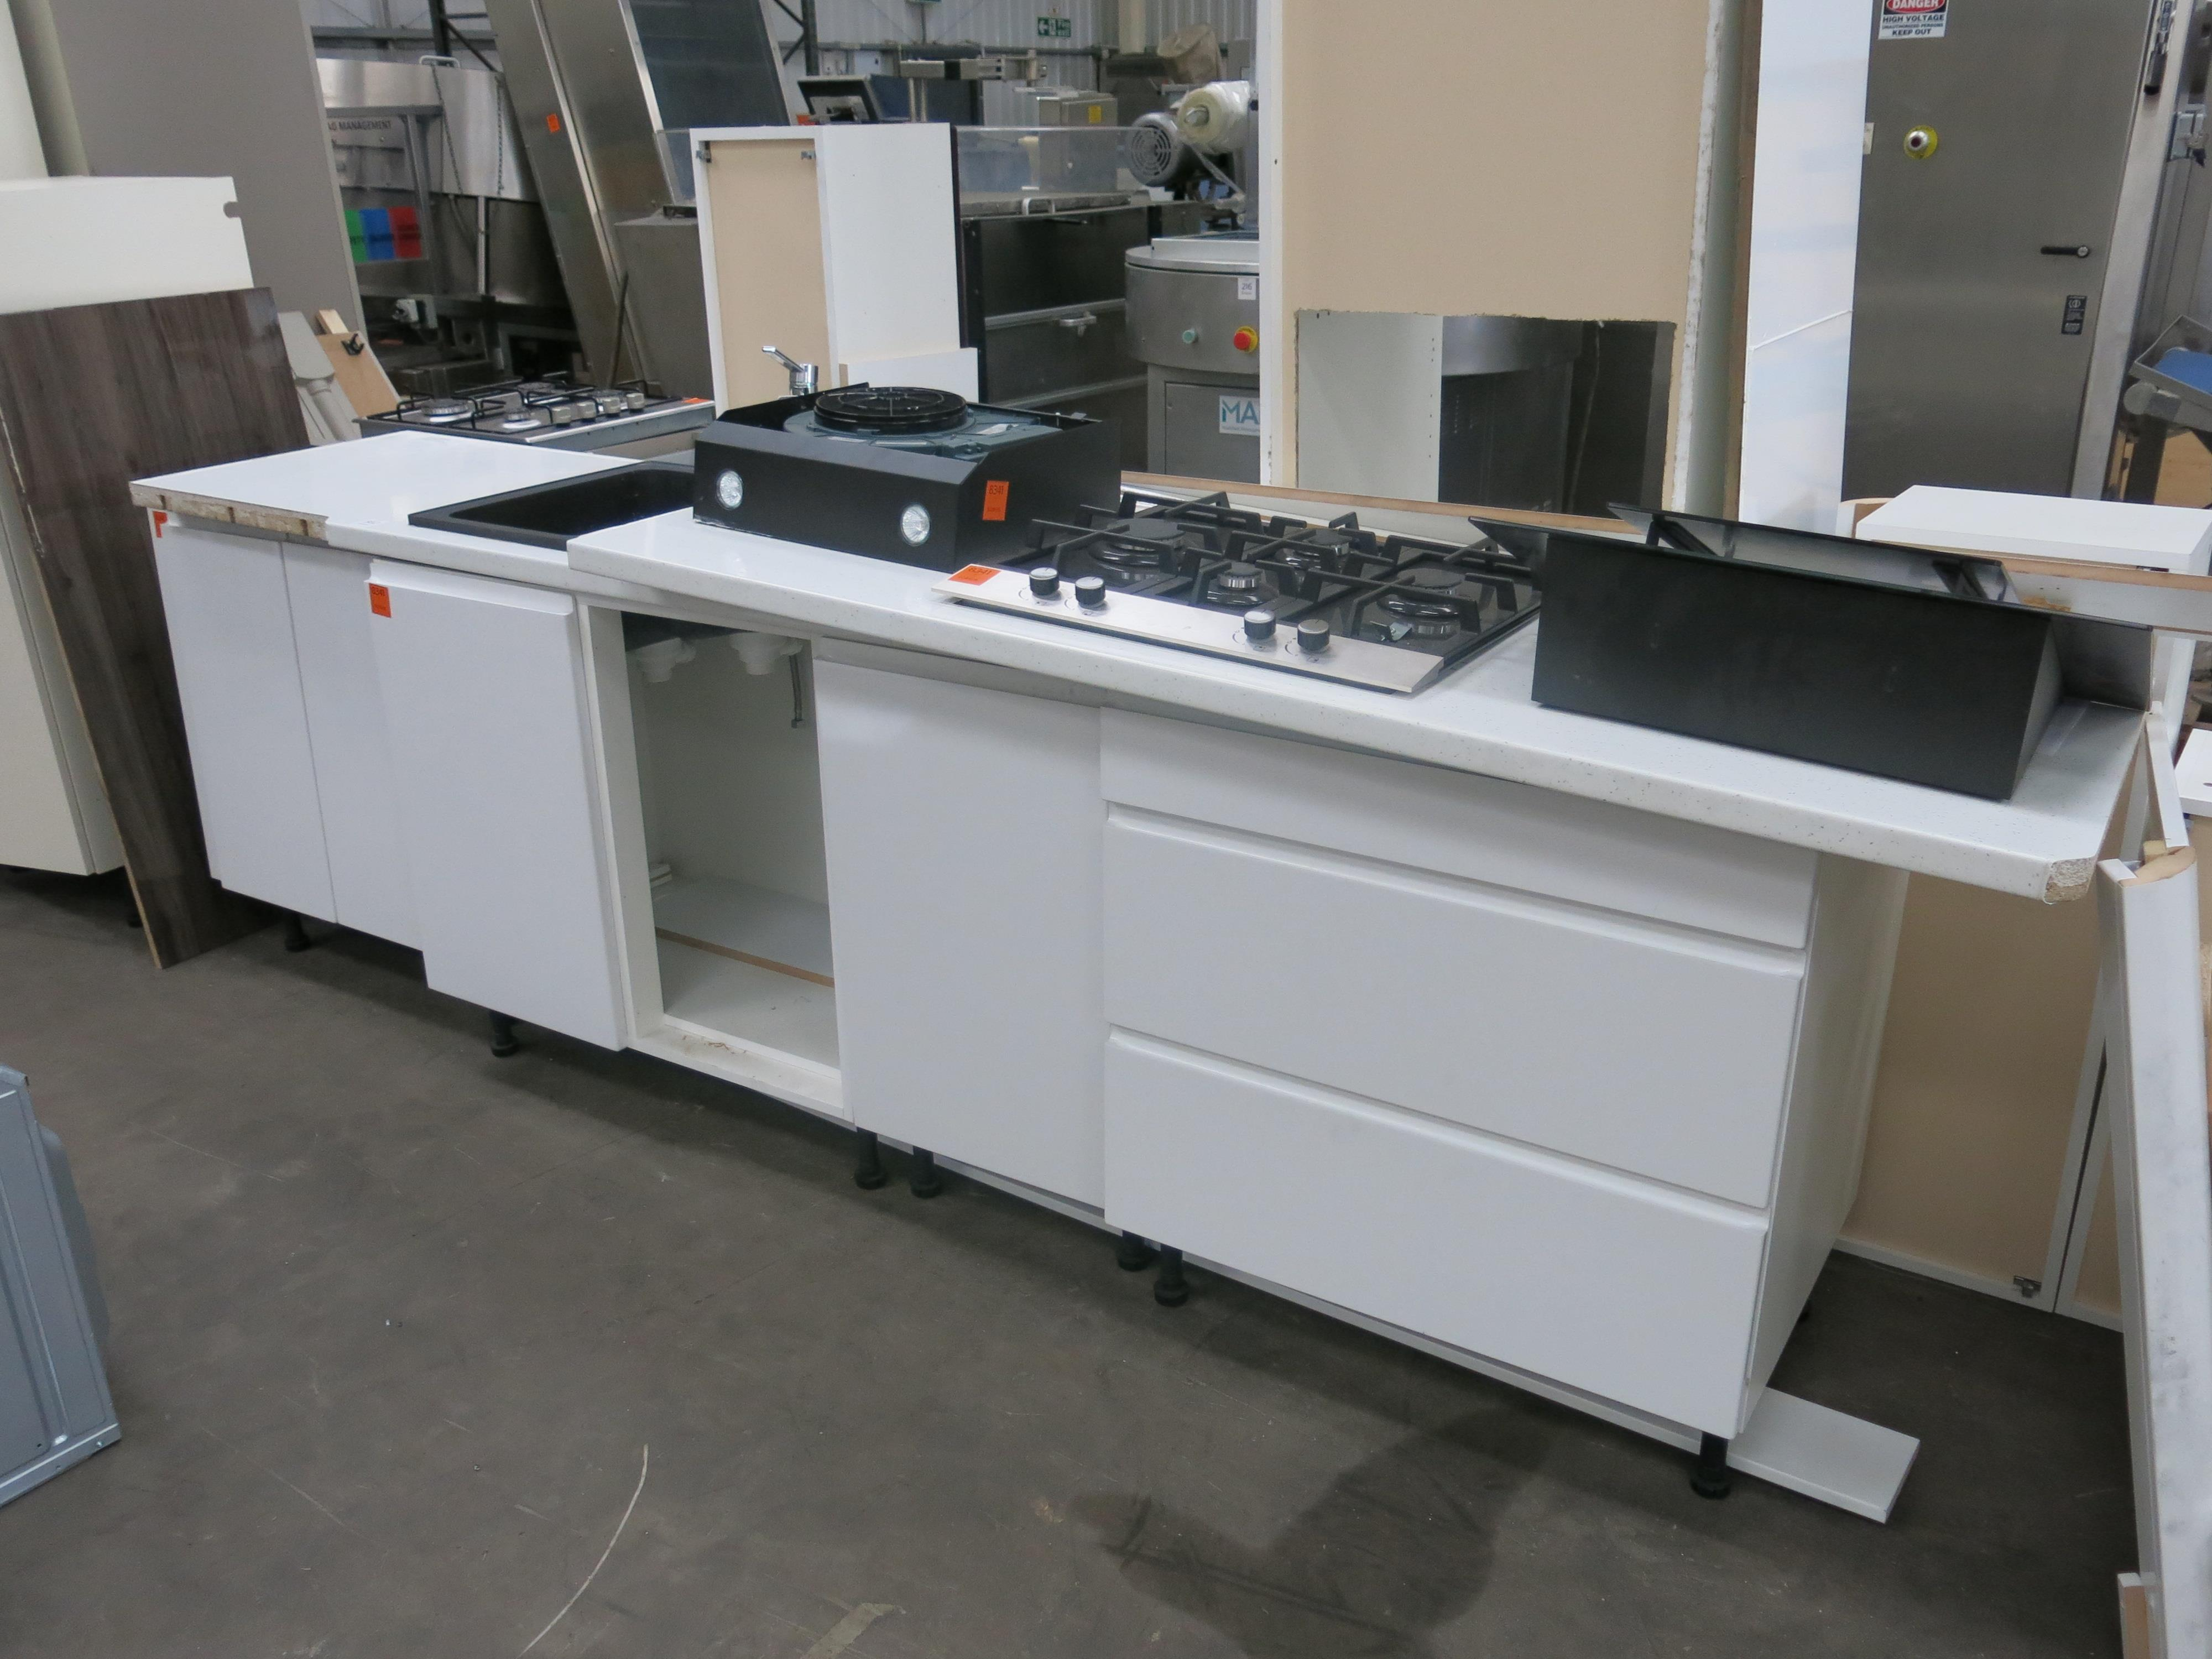 Ex Display Kitchen Unit Comprising A Large L Shaped Work Top With A Square B